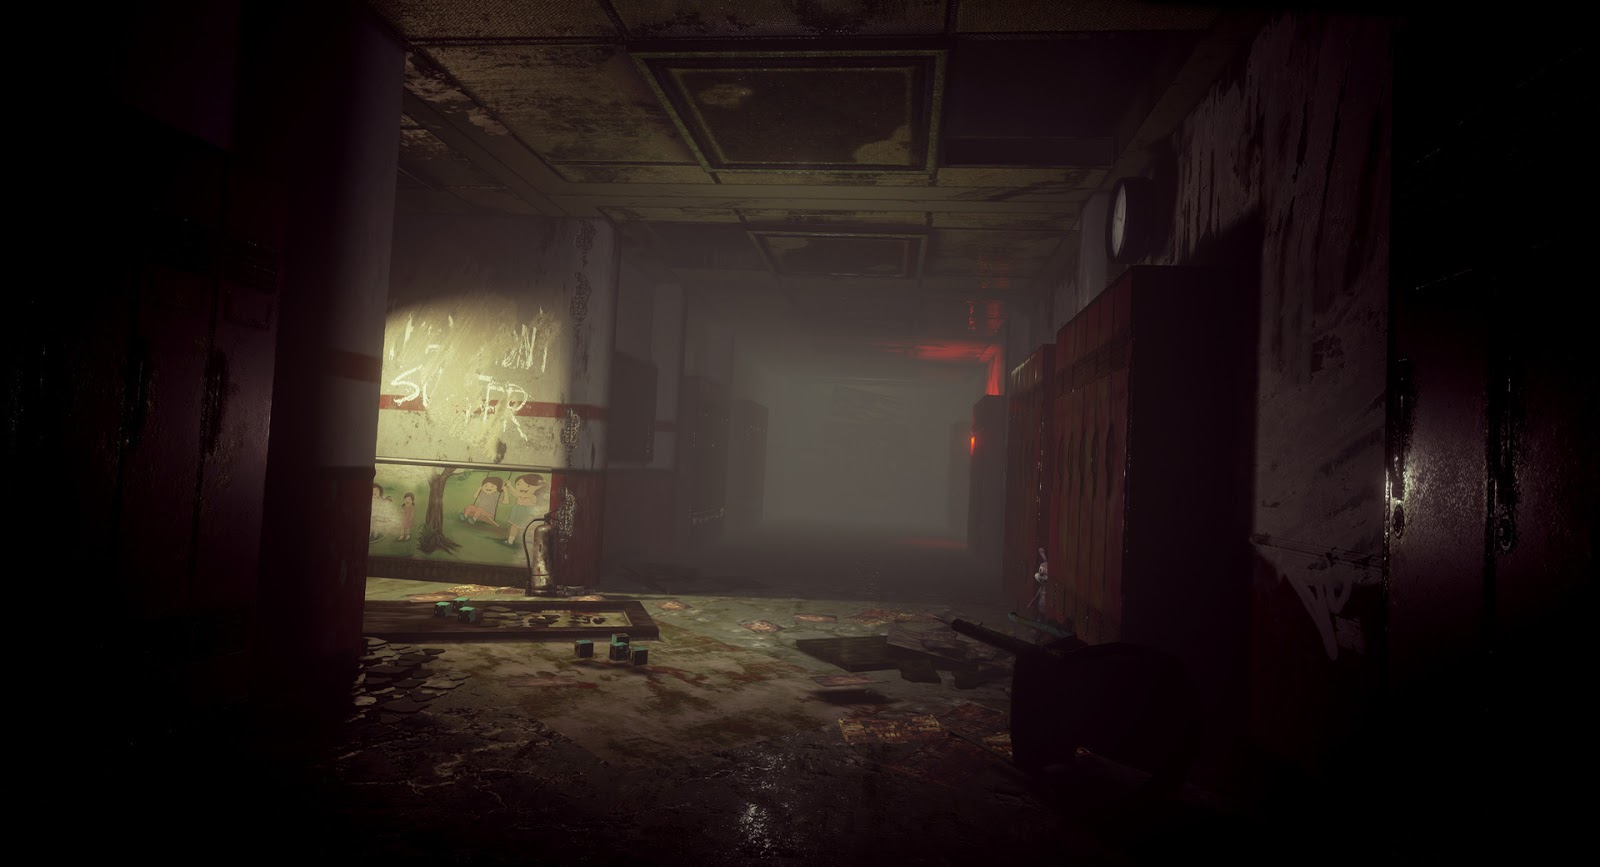 Silent Hill Environment Recreated in Unreal Engine 4 - Game News Plus